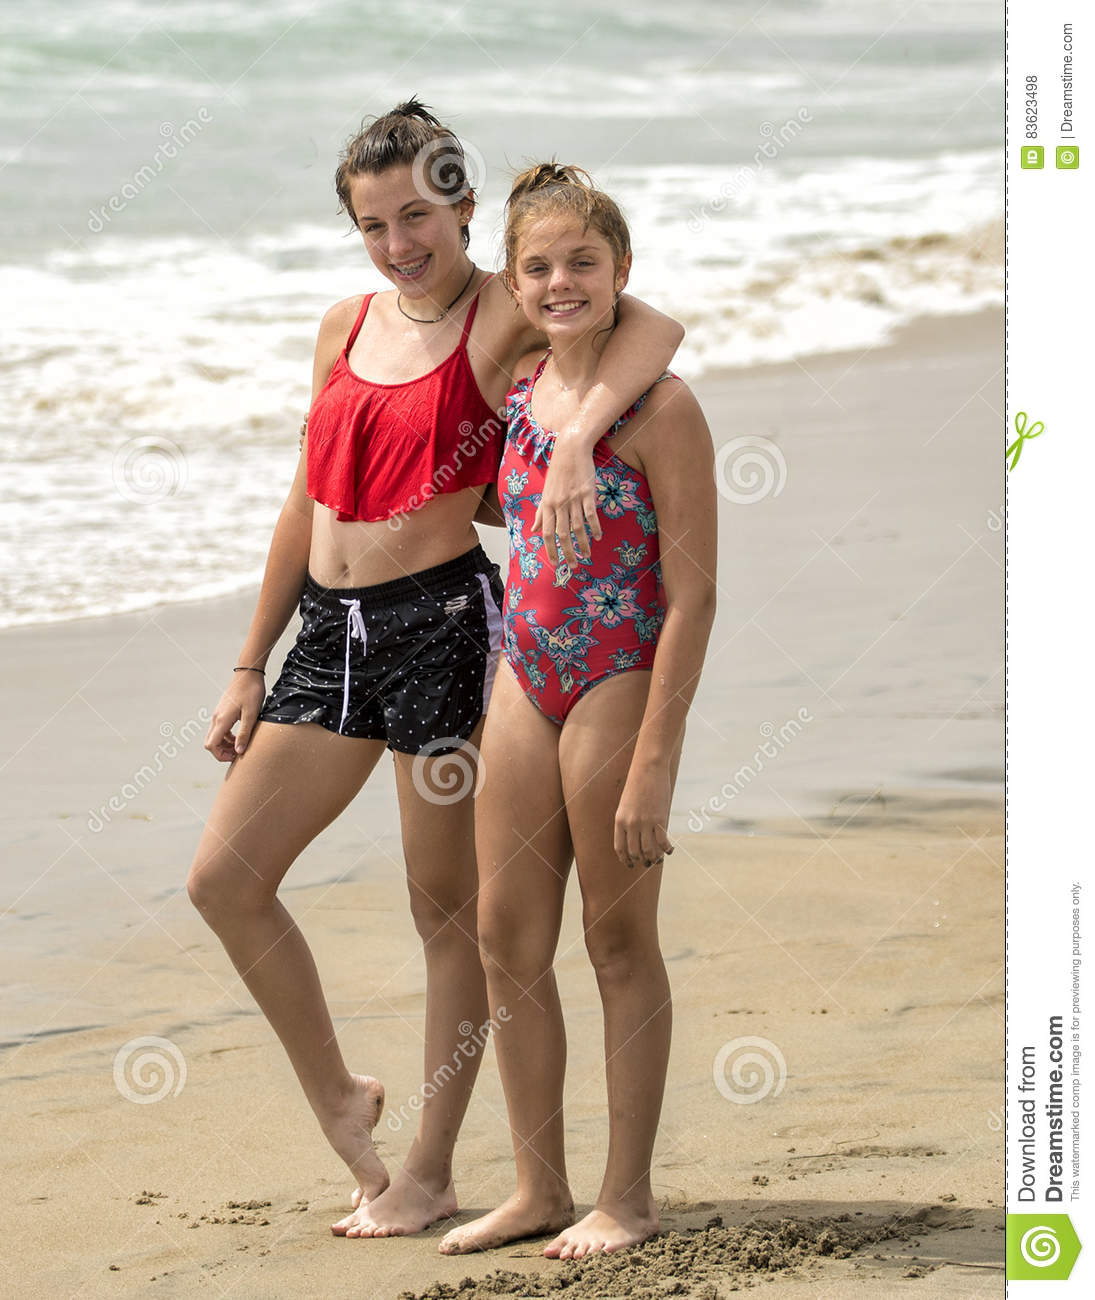 ea9a995f34c6c Two teenage sisters standing in the sand on Mission Beach in California.  The fifteen year old is wearing a two-piece swimsuit and has her left arm  draped ...